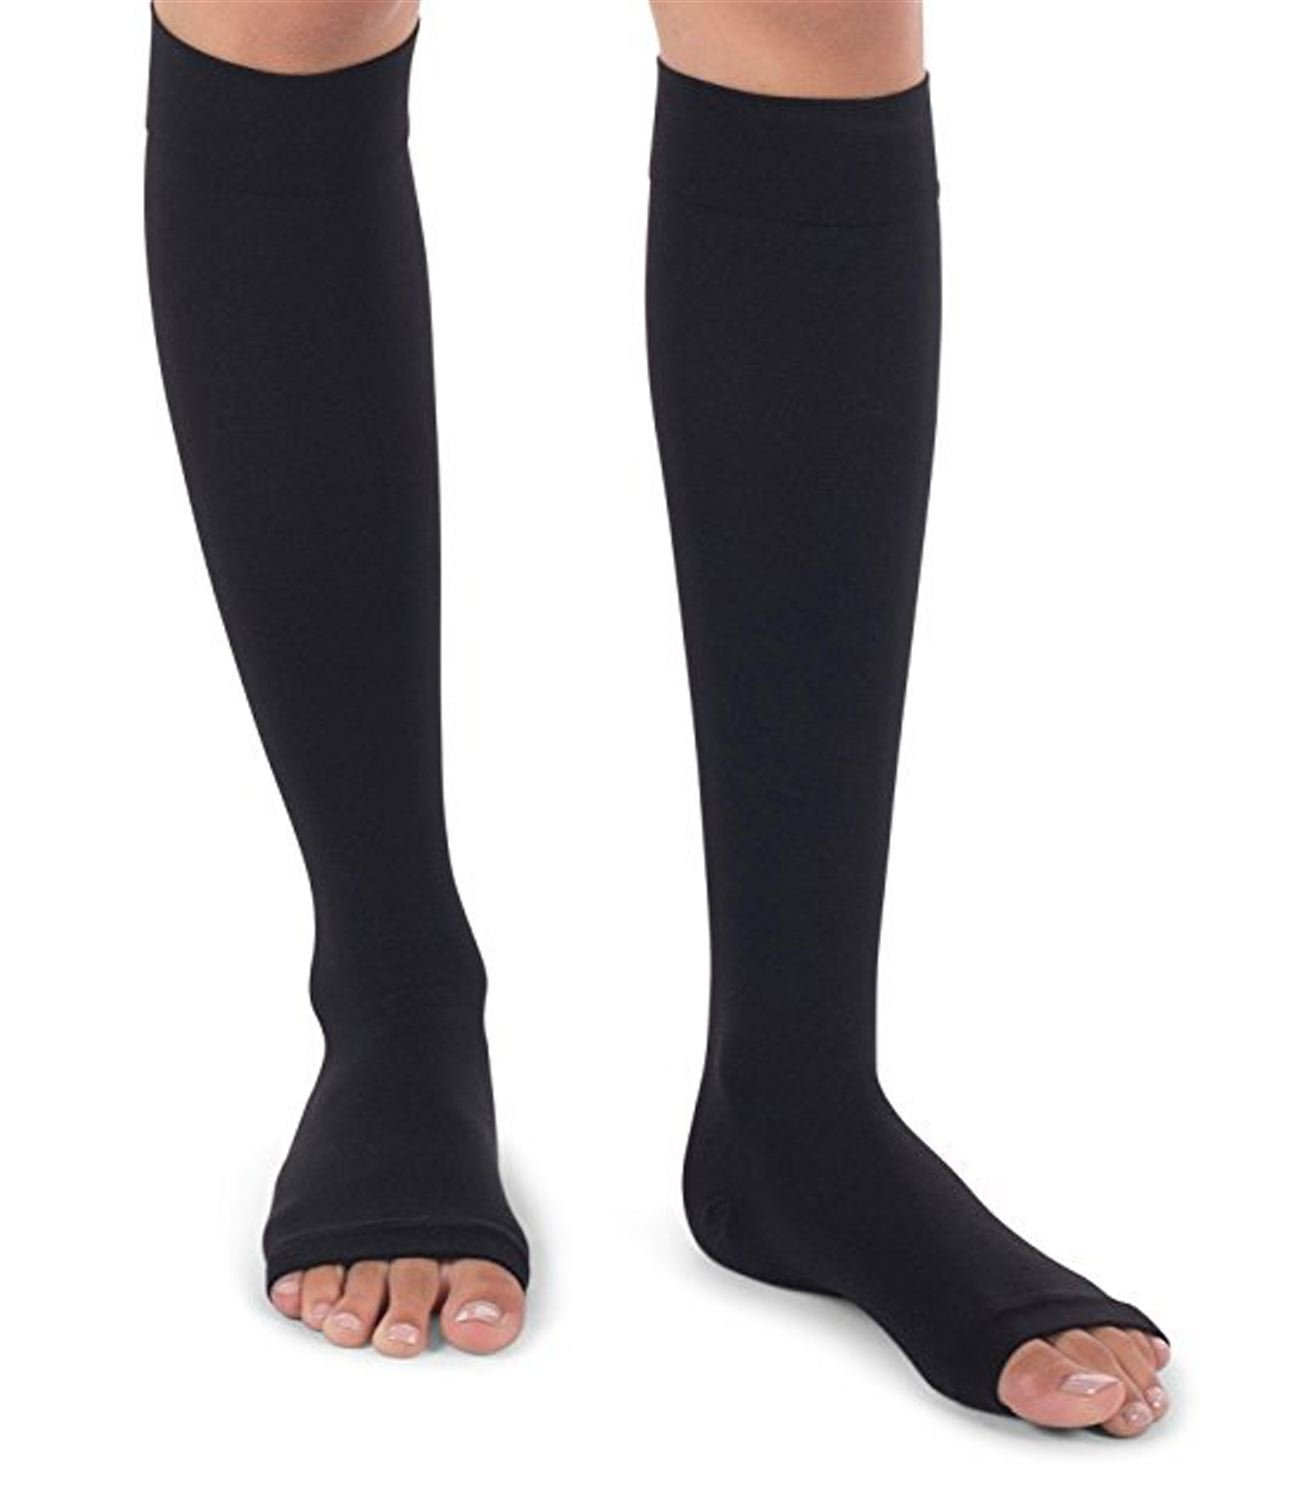 1821a6206 Amazon.com  Runee High Quality 15-20 mmHg Medical Open Toe Compression Sock  Knee High Hosiery Stocking For Swelling